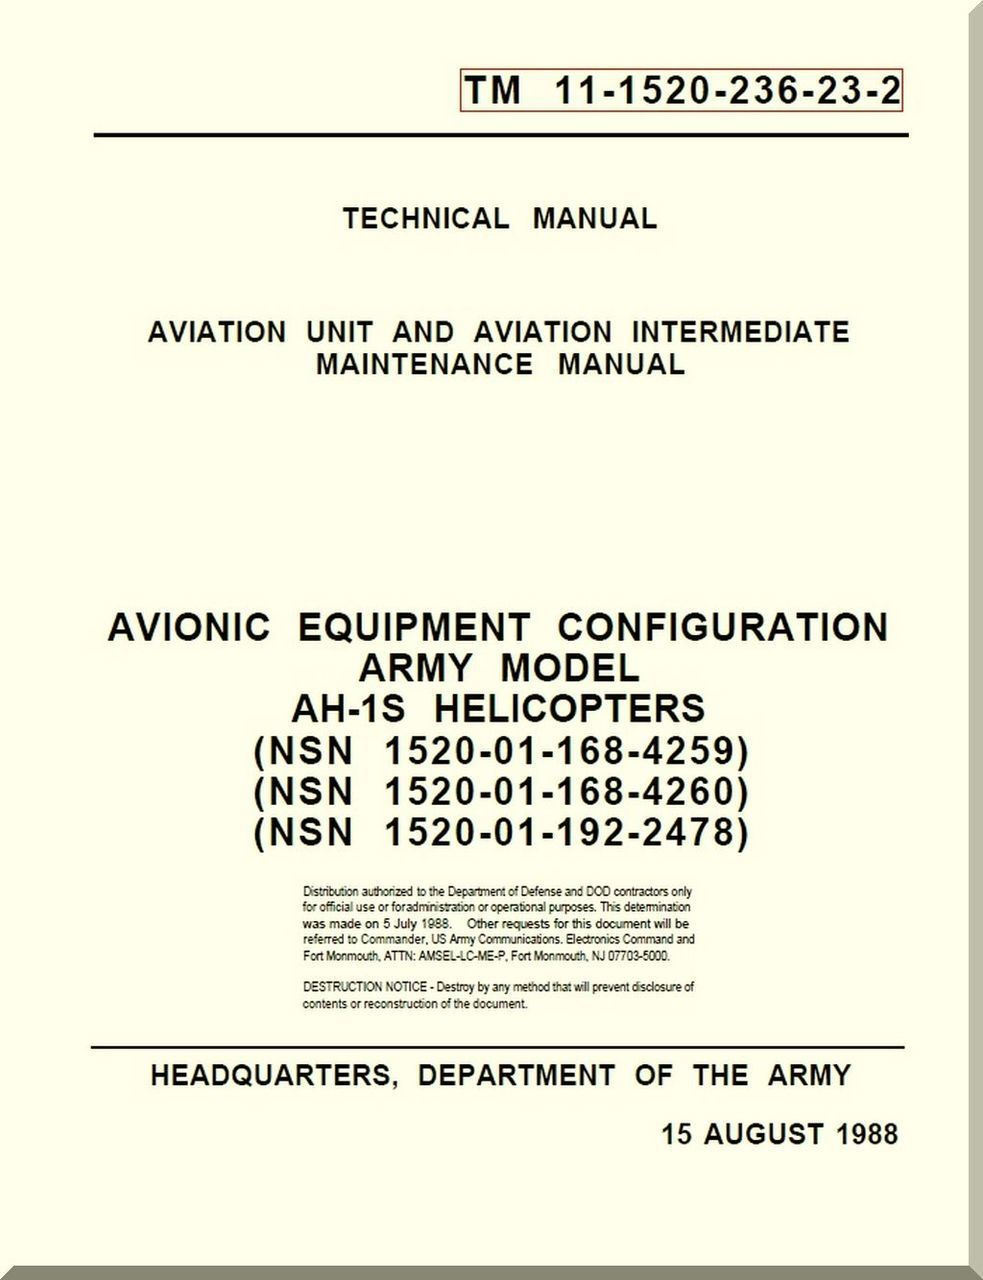 Navair 01 1a 23 manual array bell helicopter ah 1 s aviation unit and intermediate maintenance rh pinterest com fandeluxe Images